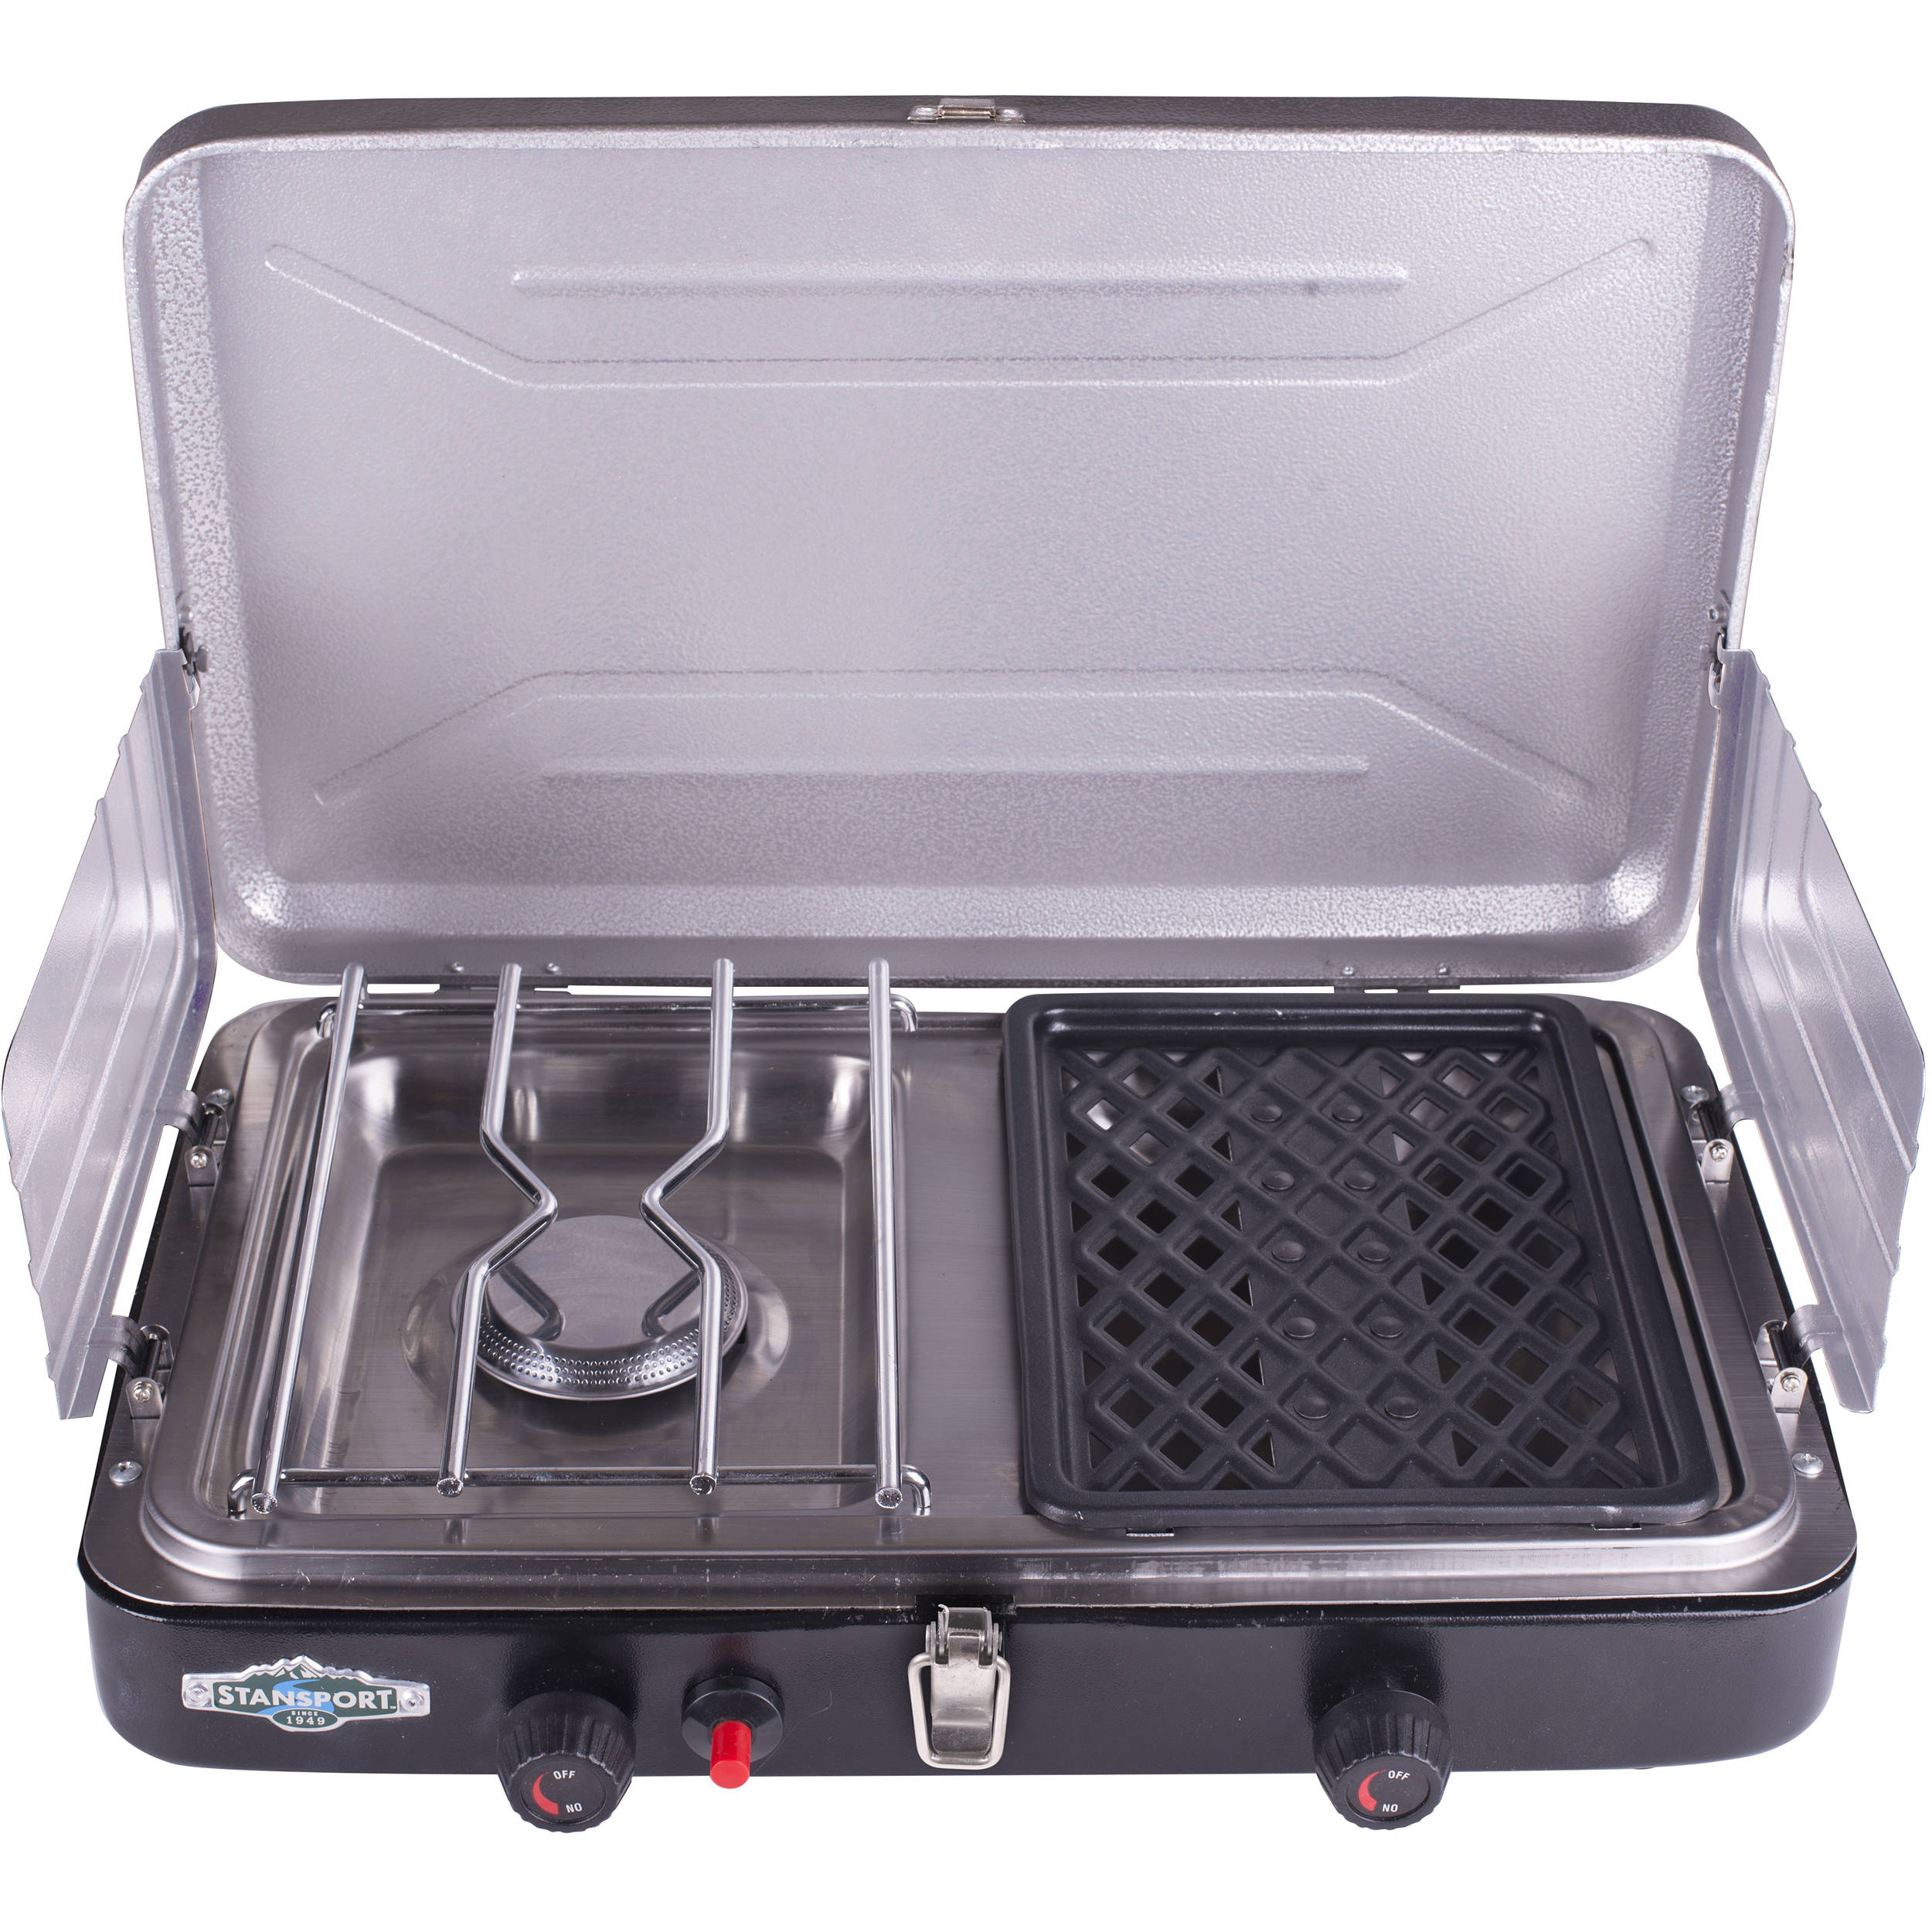 Stansport Propane Stove Amp Grill Combo With Piezo 206 100 B Amp H